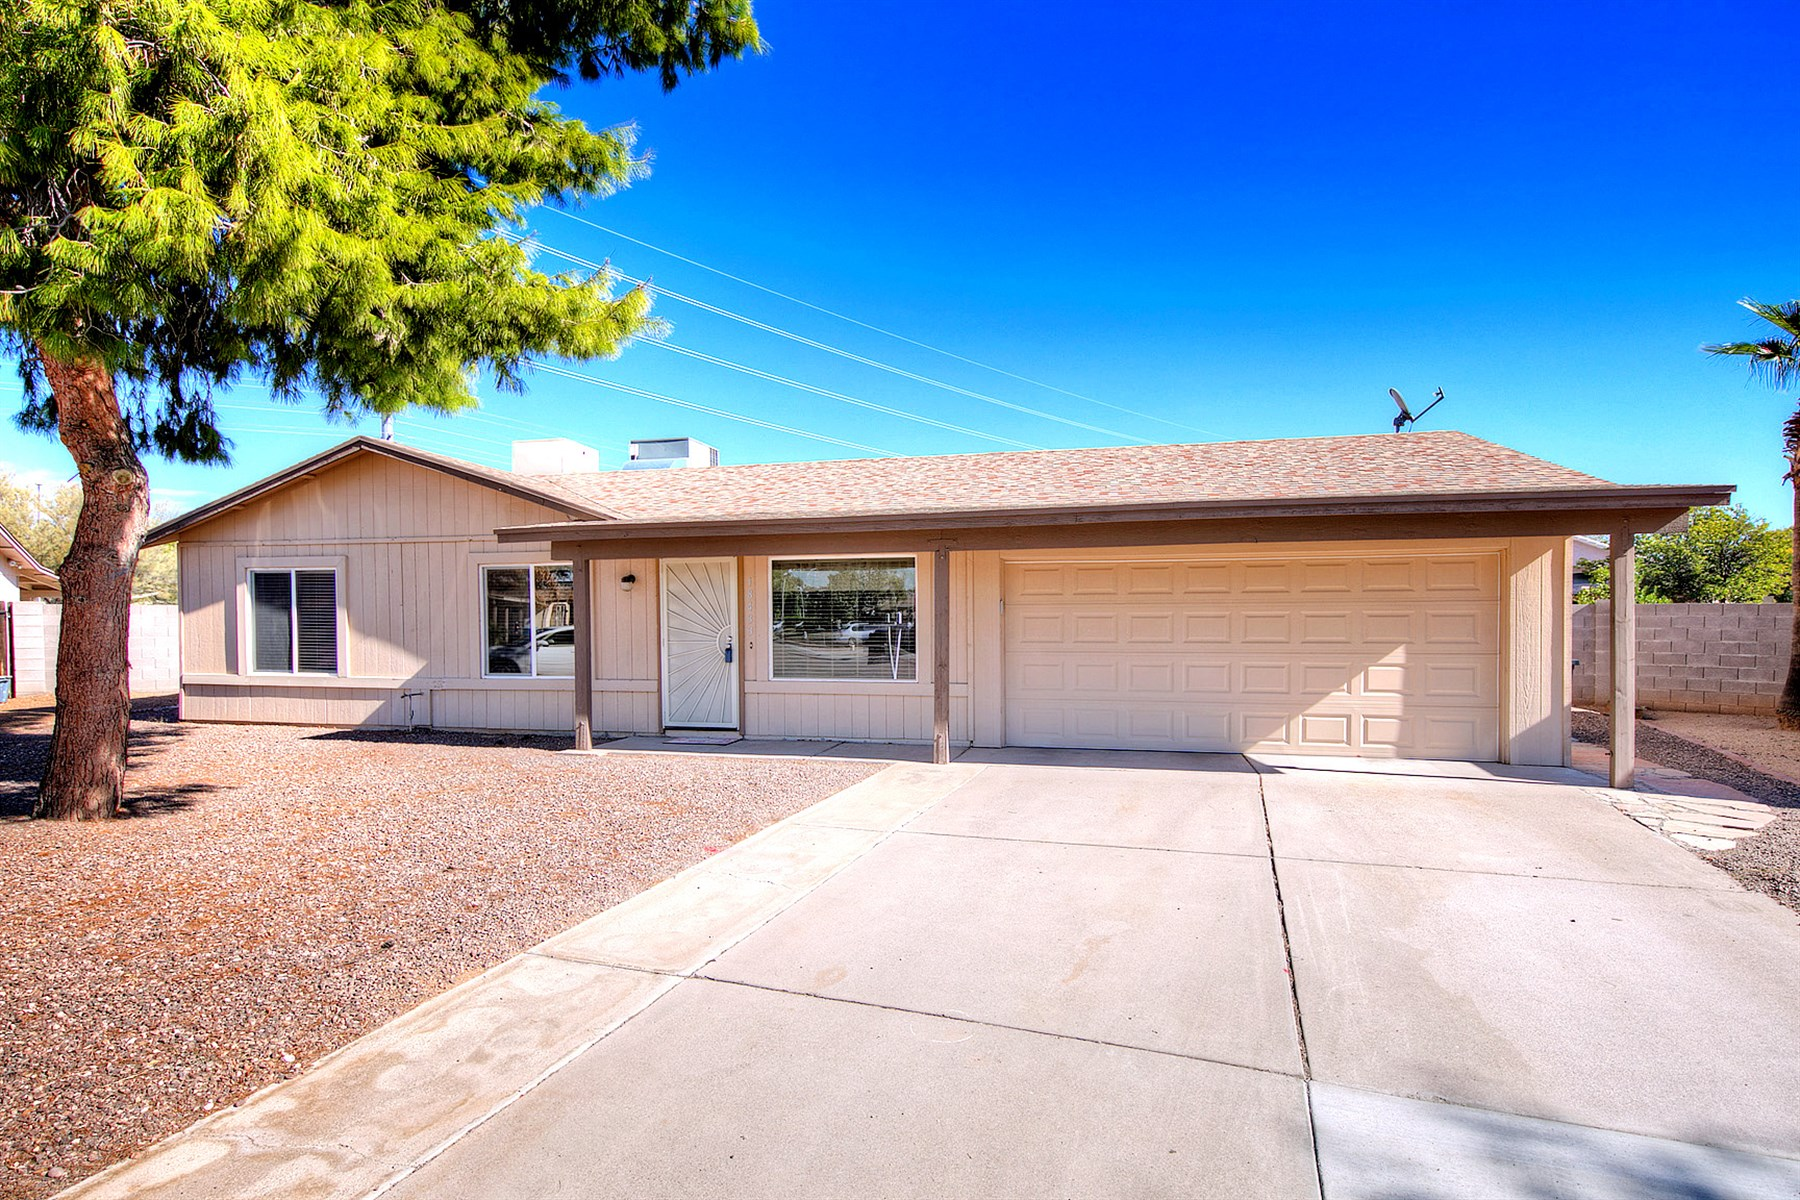 Property For Sale at Remodeled MODEL PERFECT Home on over 1/4 acre lot